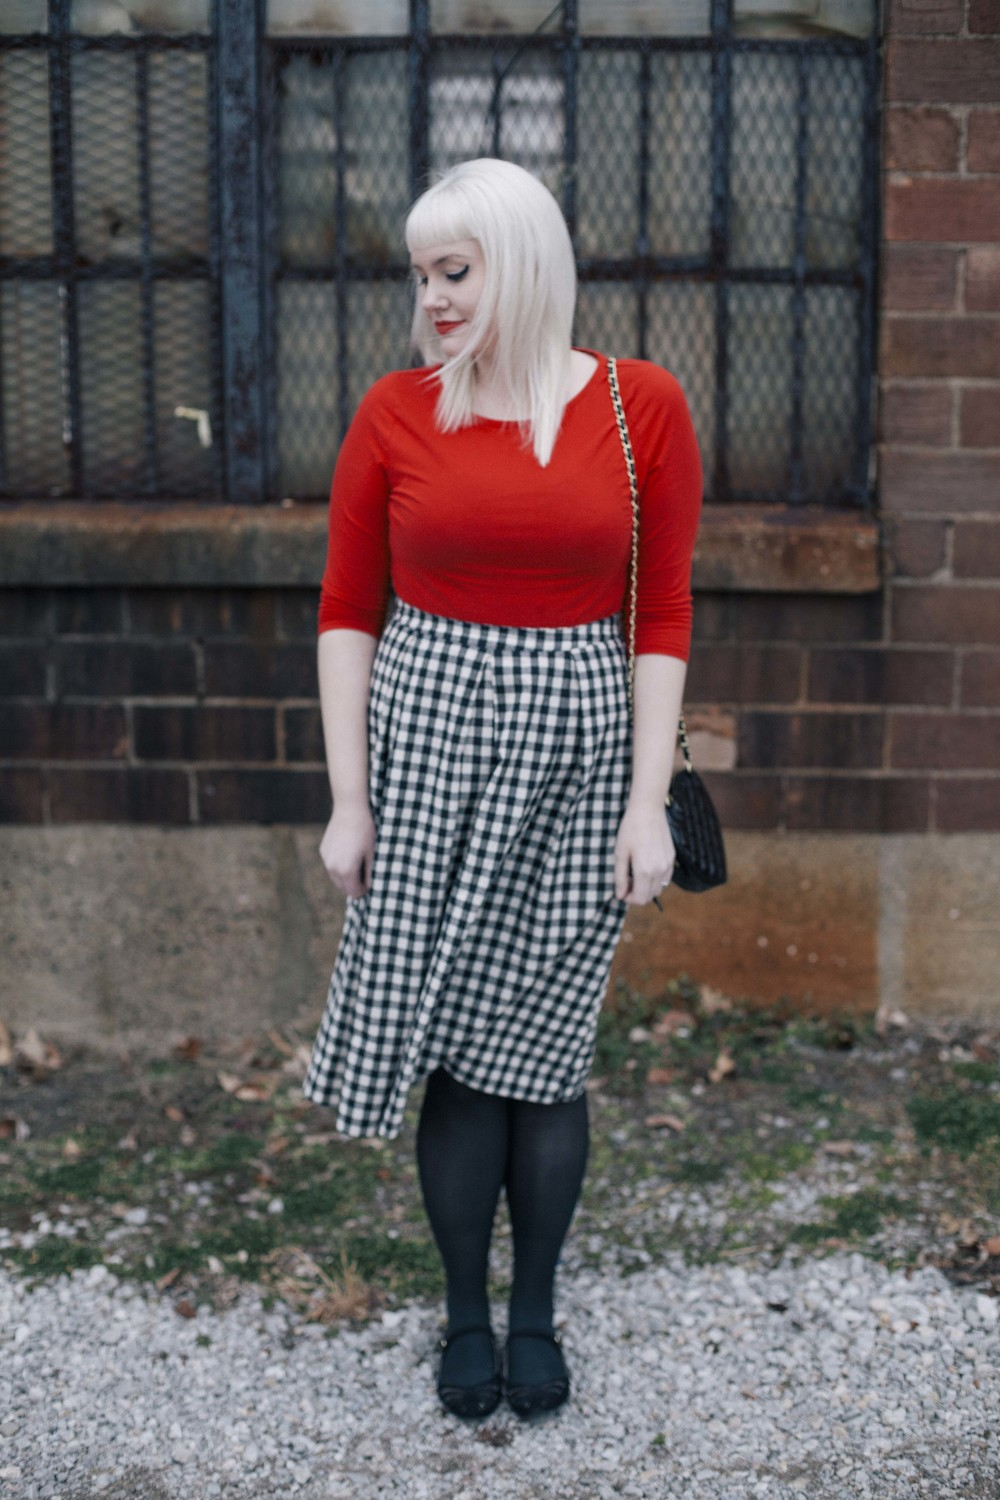 What she's wearing: top- target, skirt- modcloth, shoes- plasticland,   purse- asos